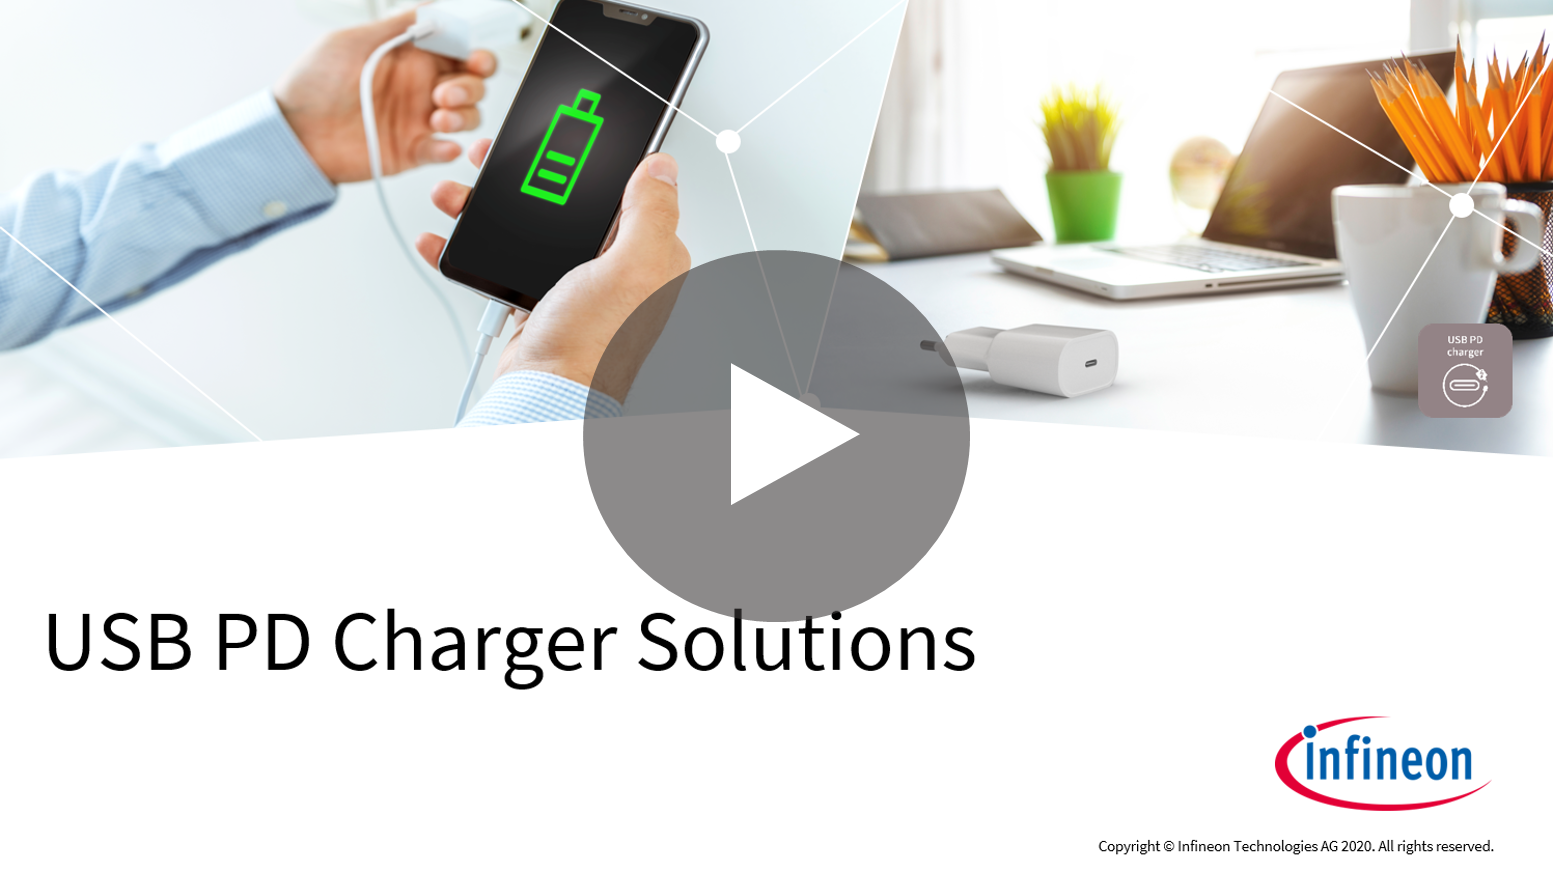 infineon eLearning USB-PD Charger solutions